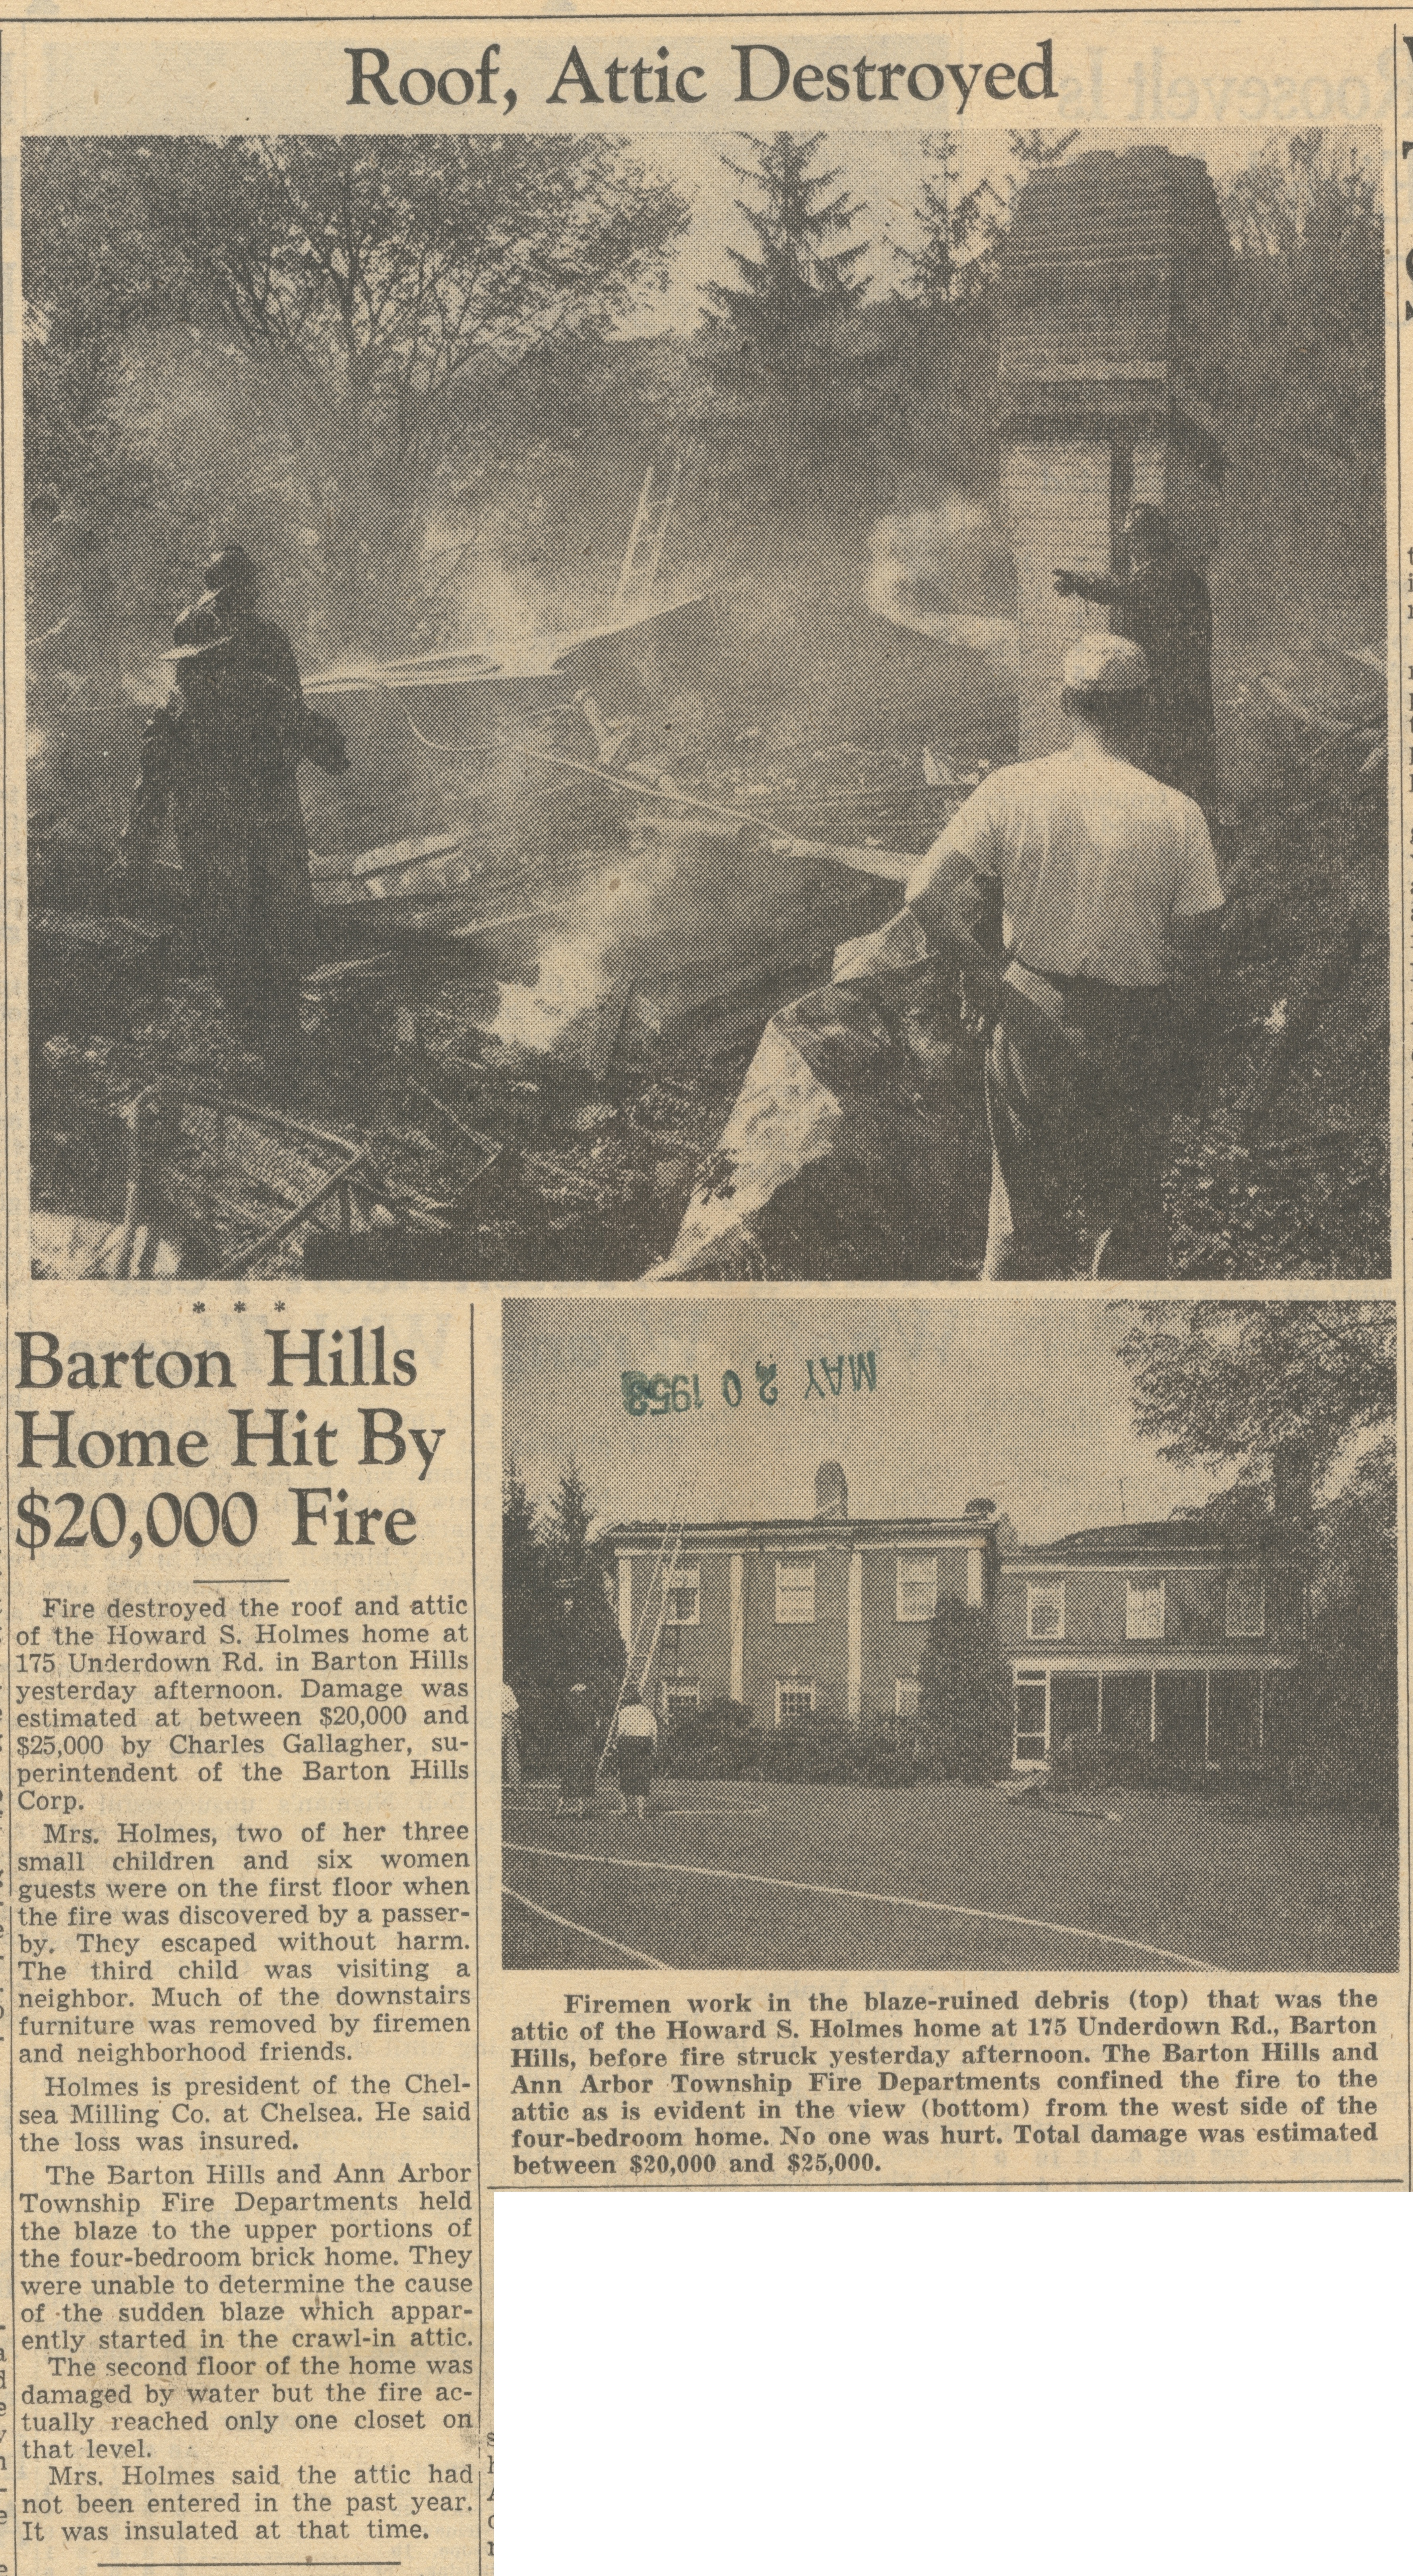 Barton Hills Home Hit By $20,000 Fire image